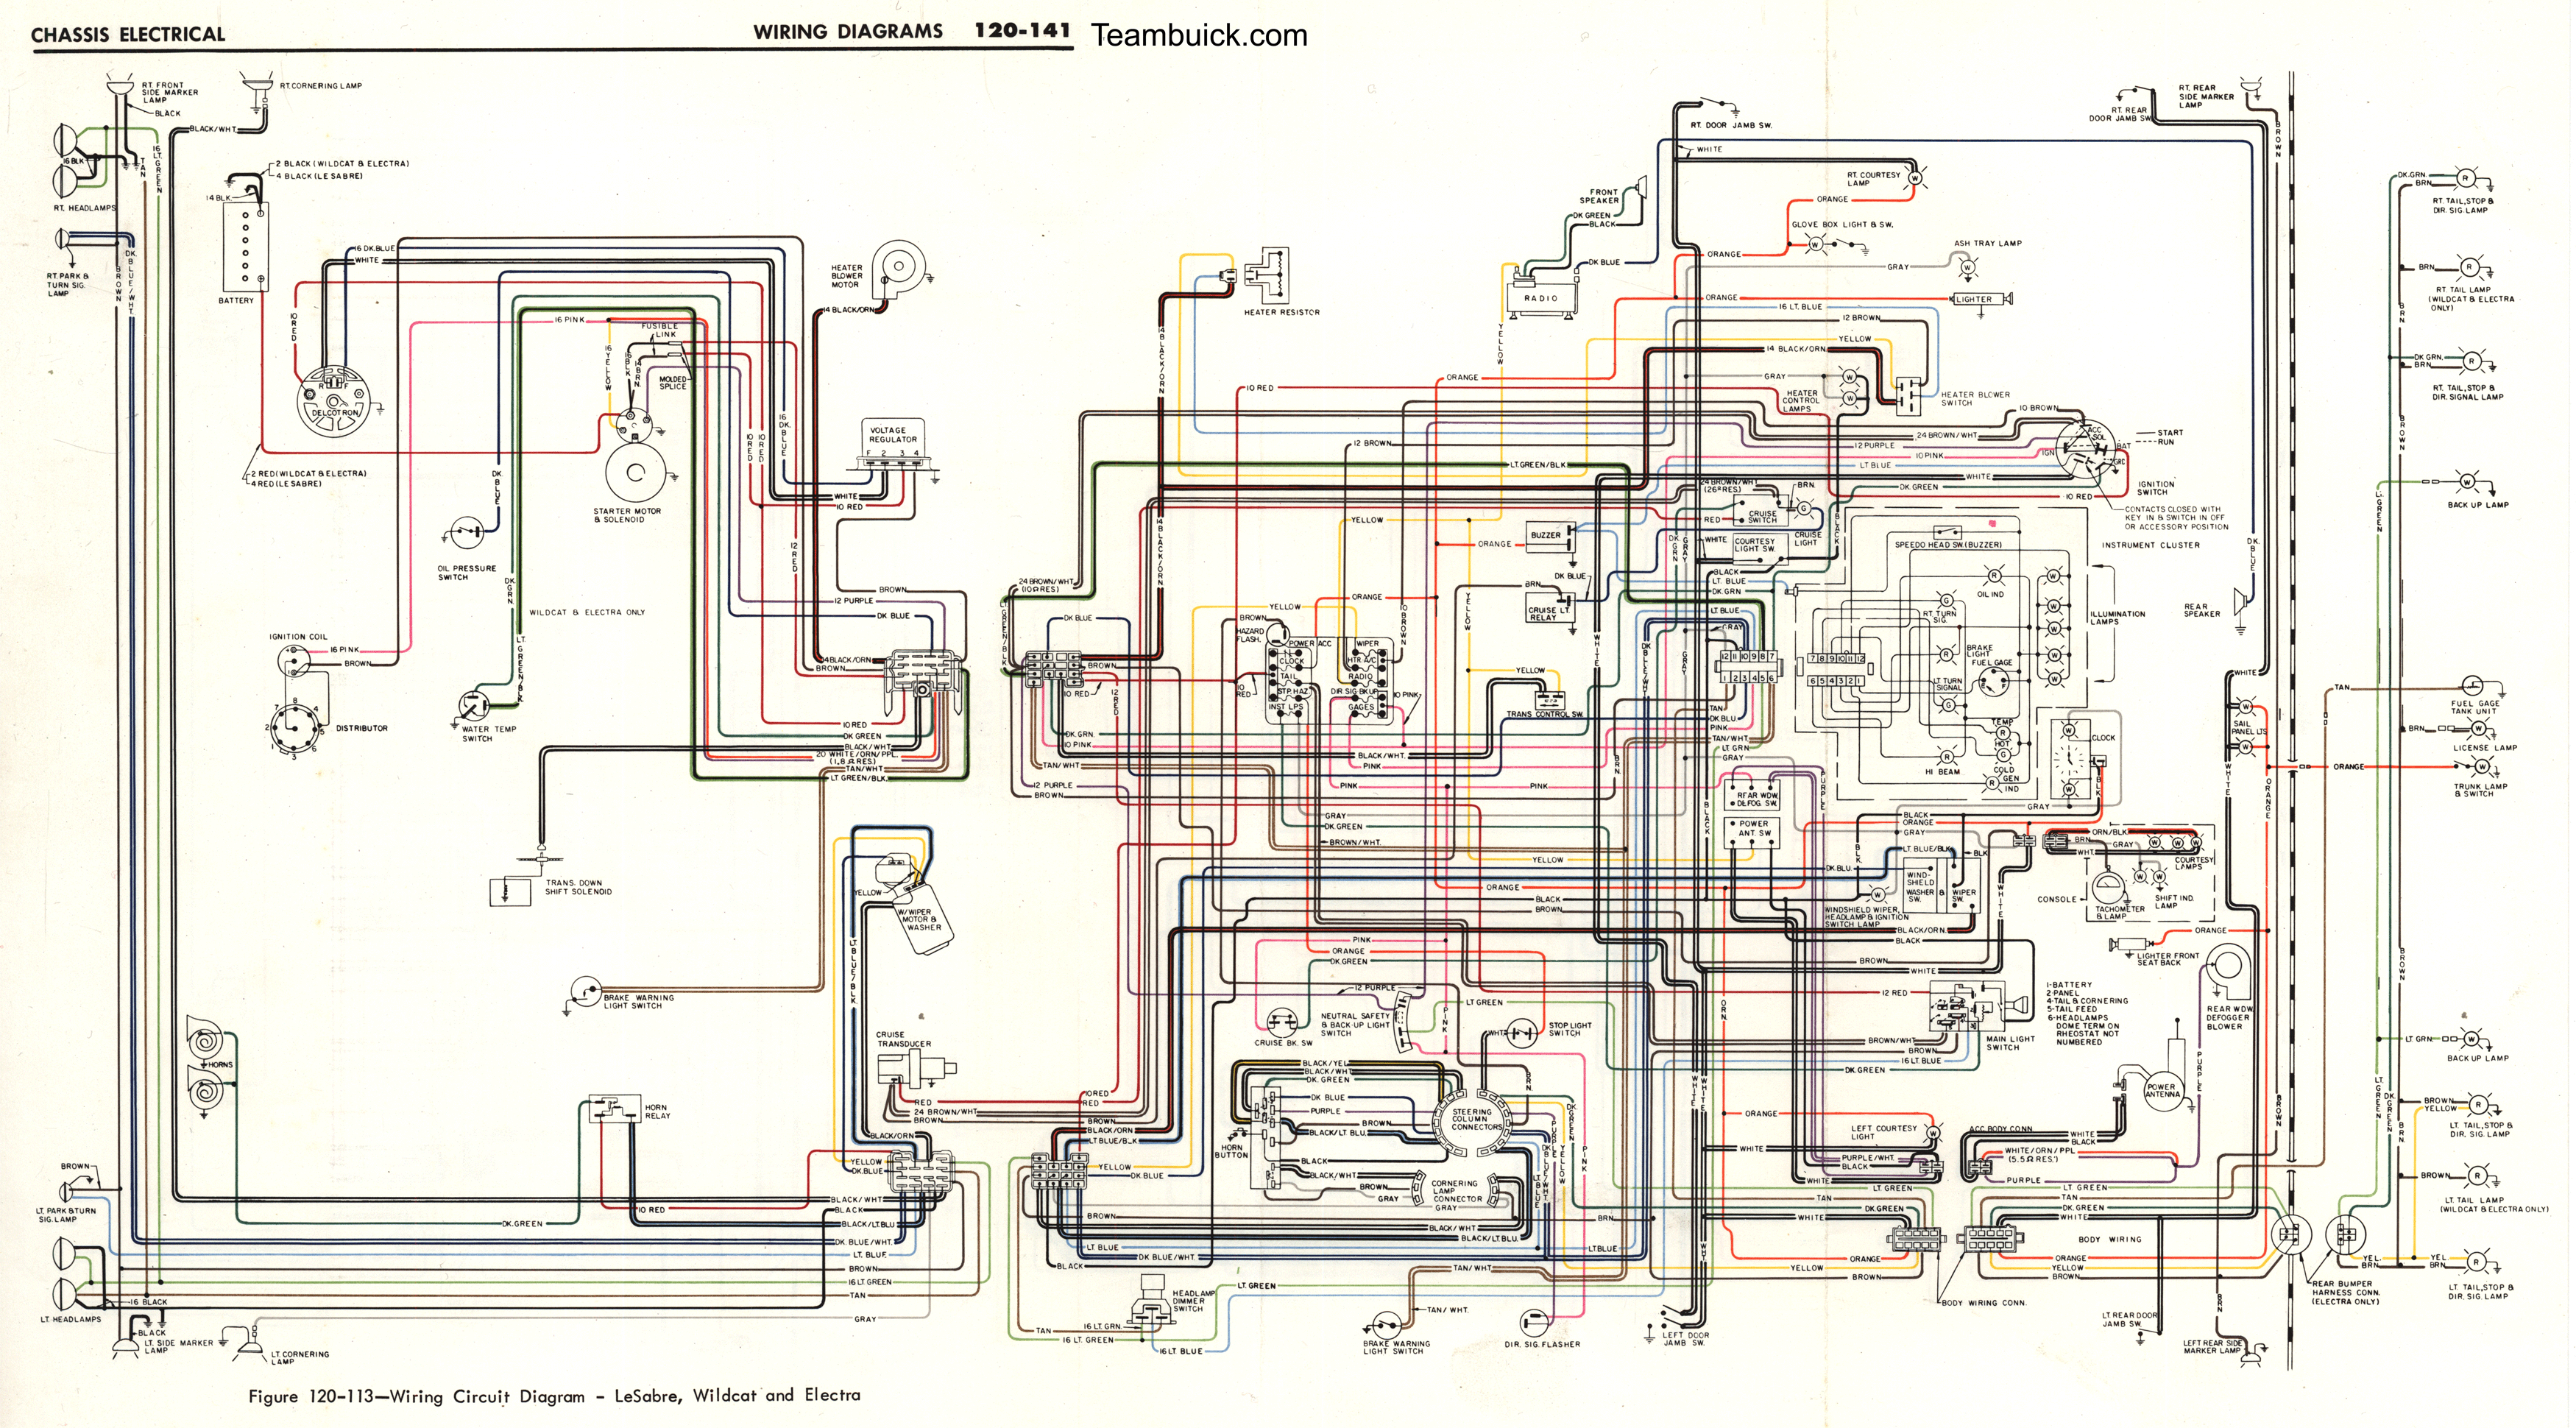 Wiring Circuit Diagrams  1968 Buick Chassis Manual